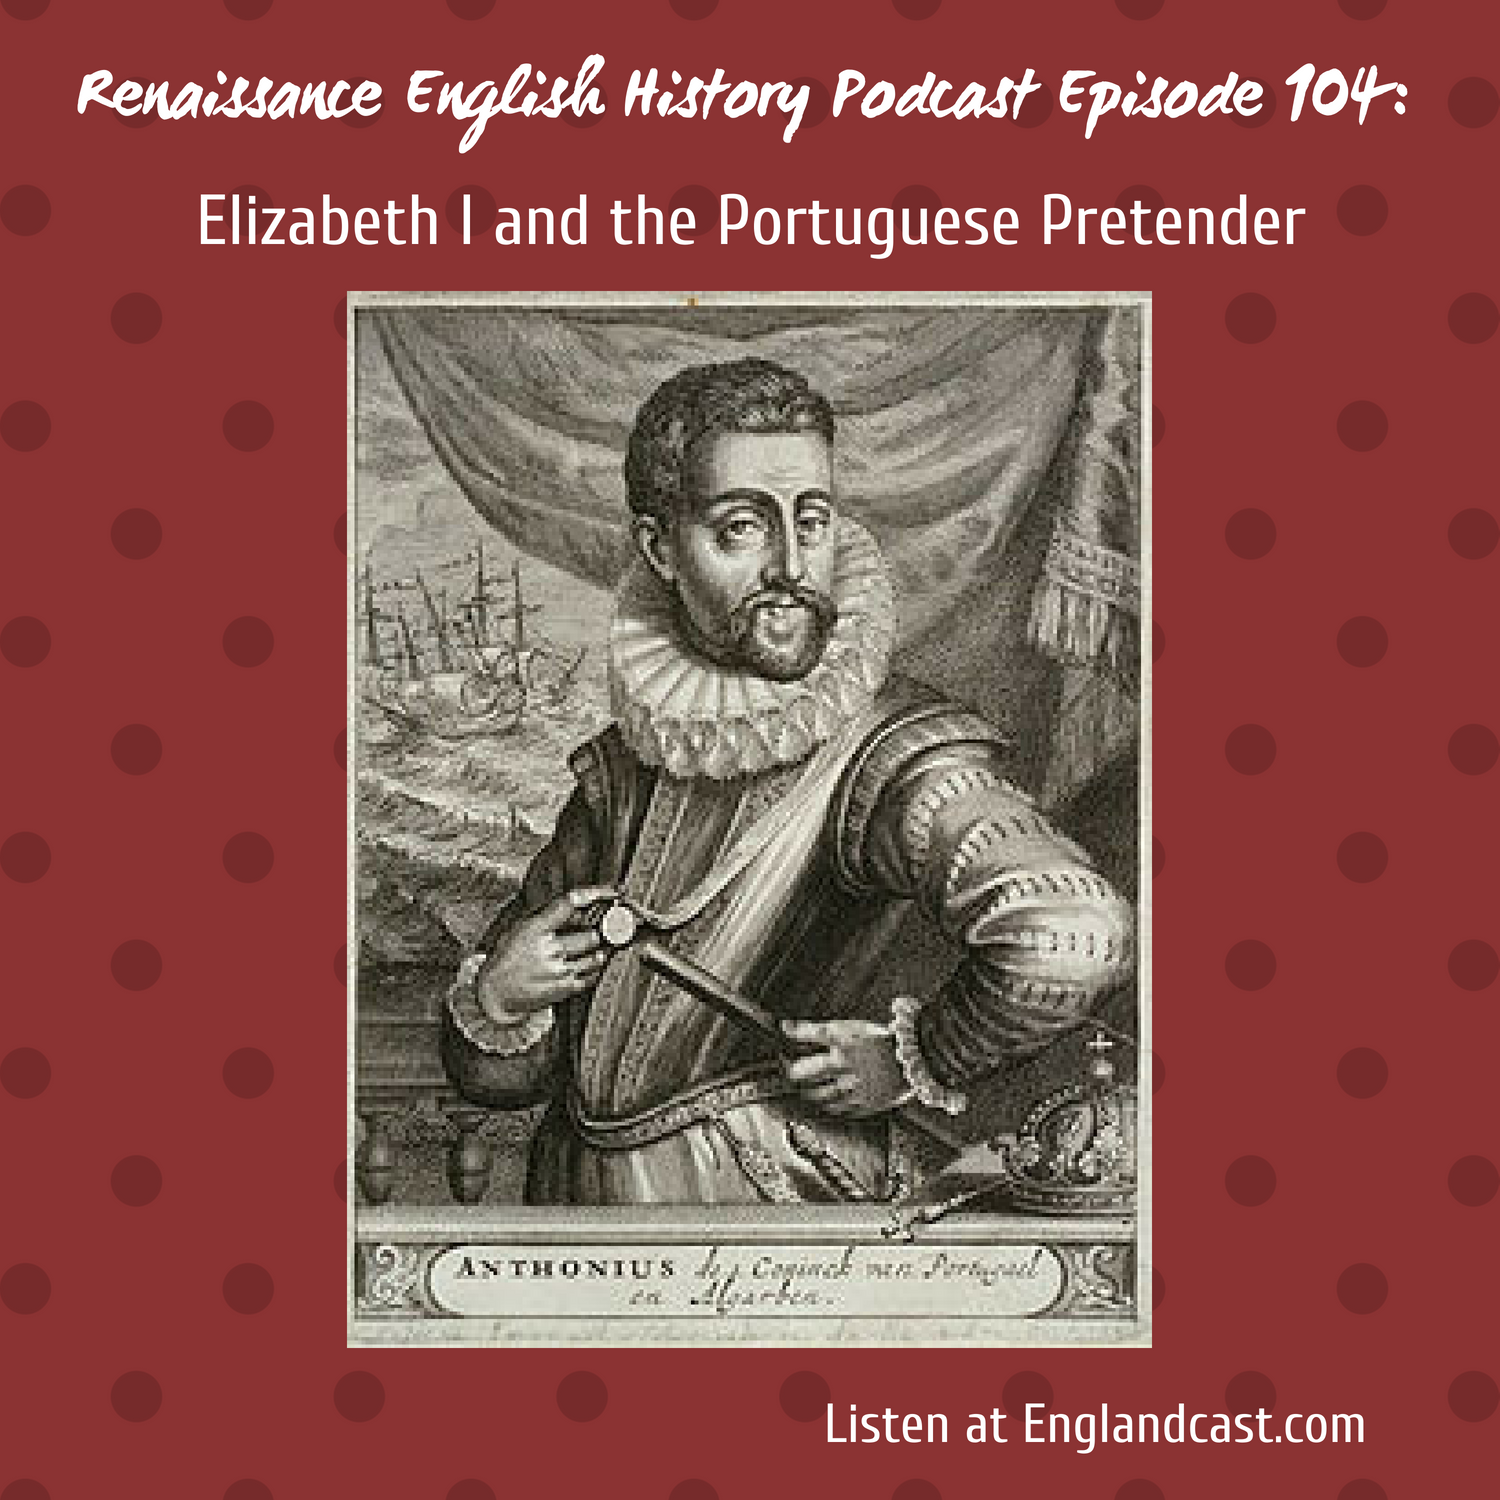 Episode 104: Elizabeth and the Pretender